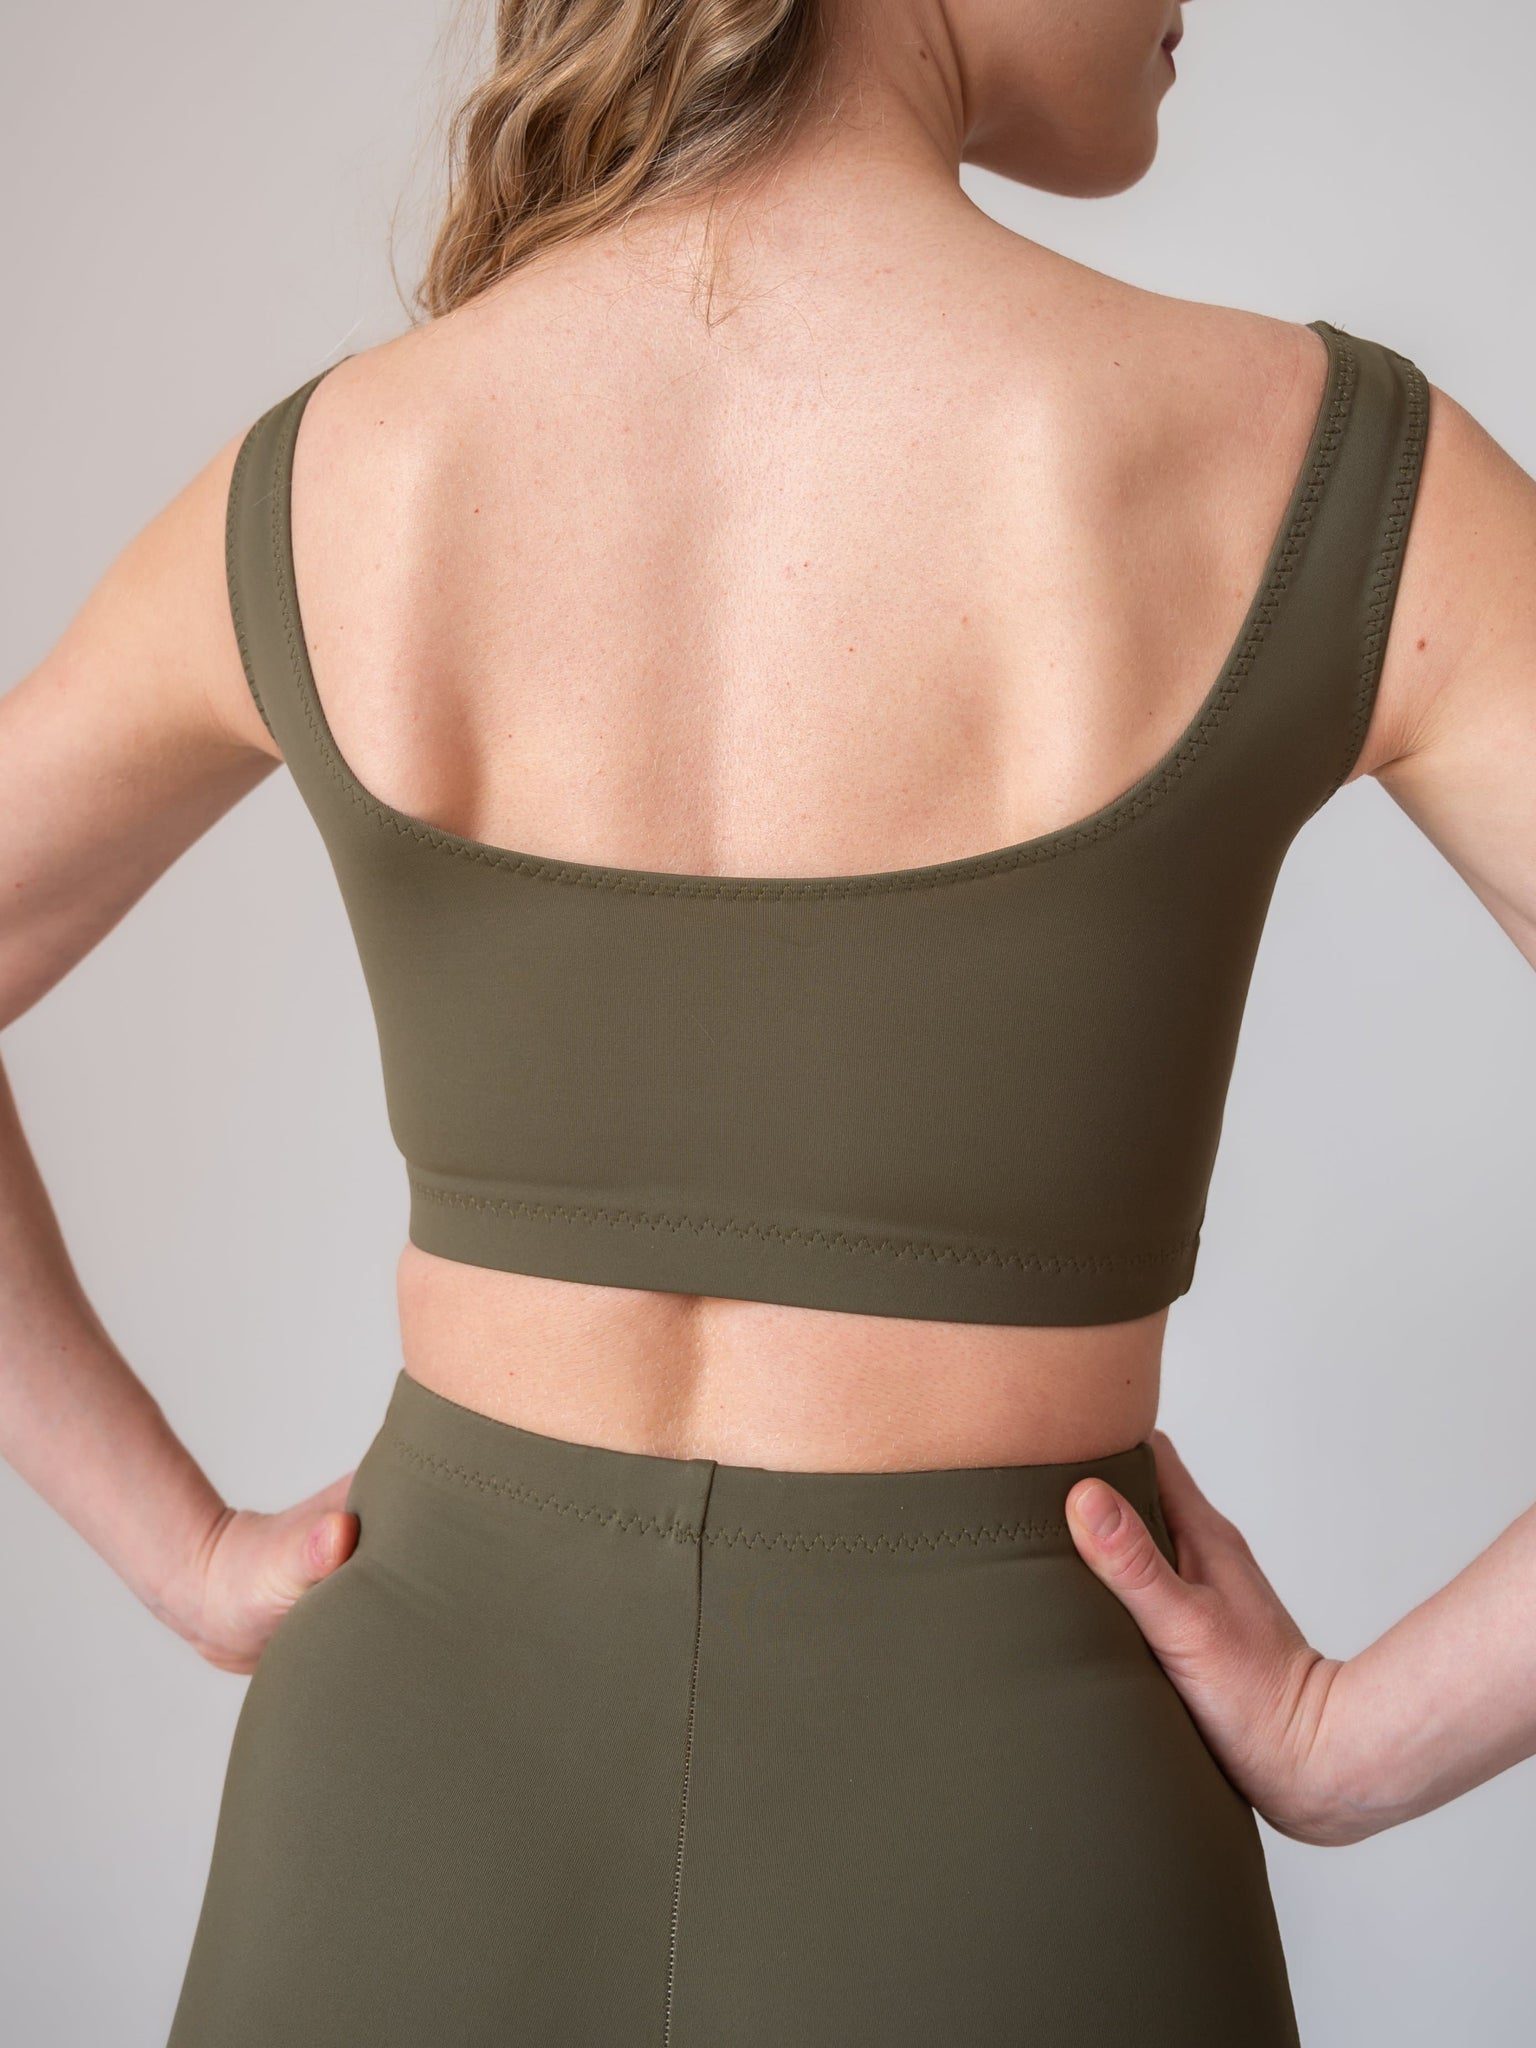 Sage green yoga and fitness bralettes for women and girls by Lena Activewear